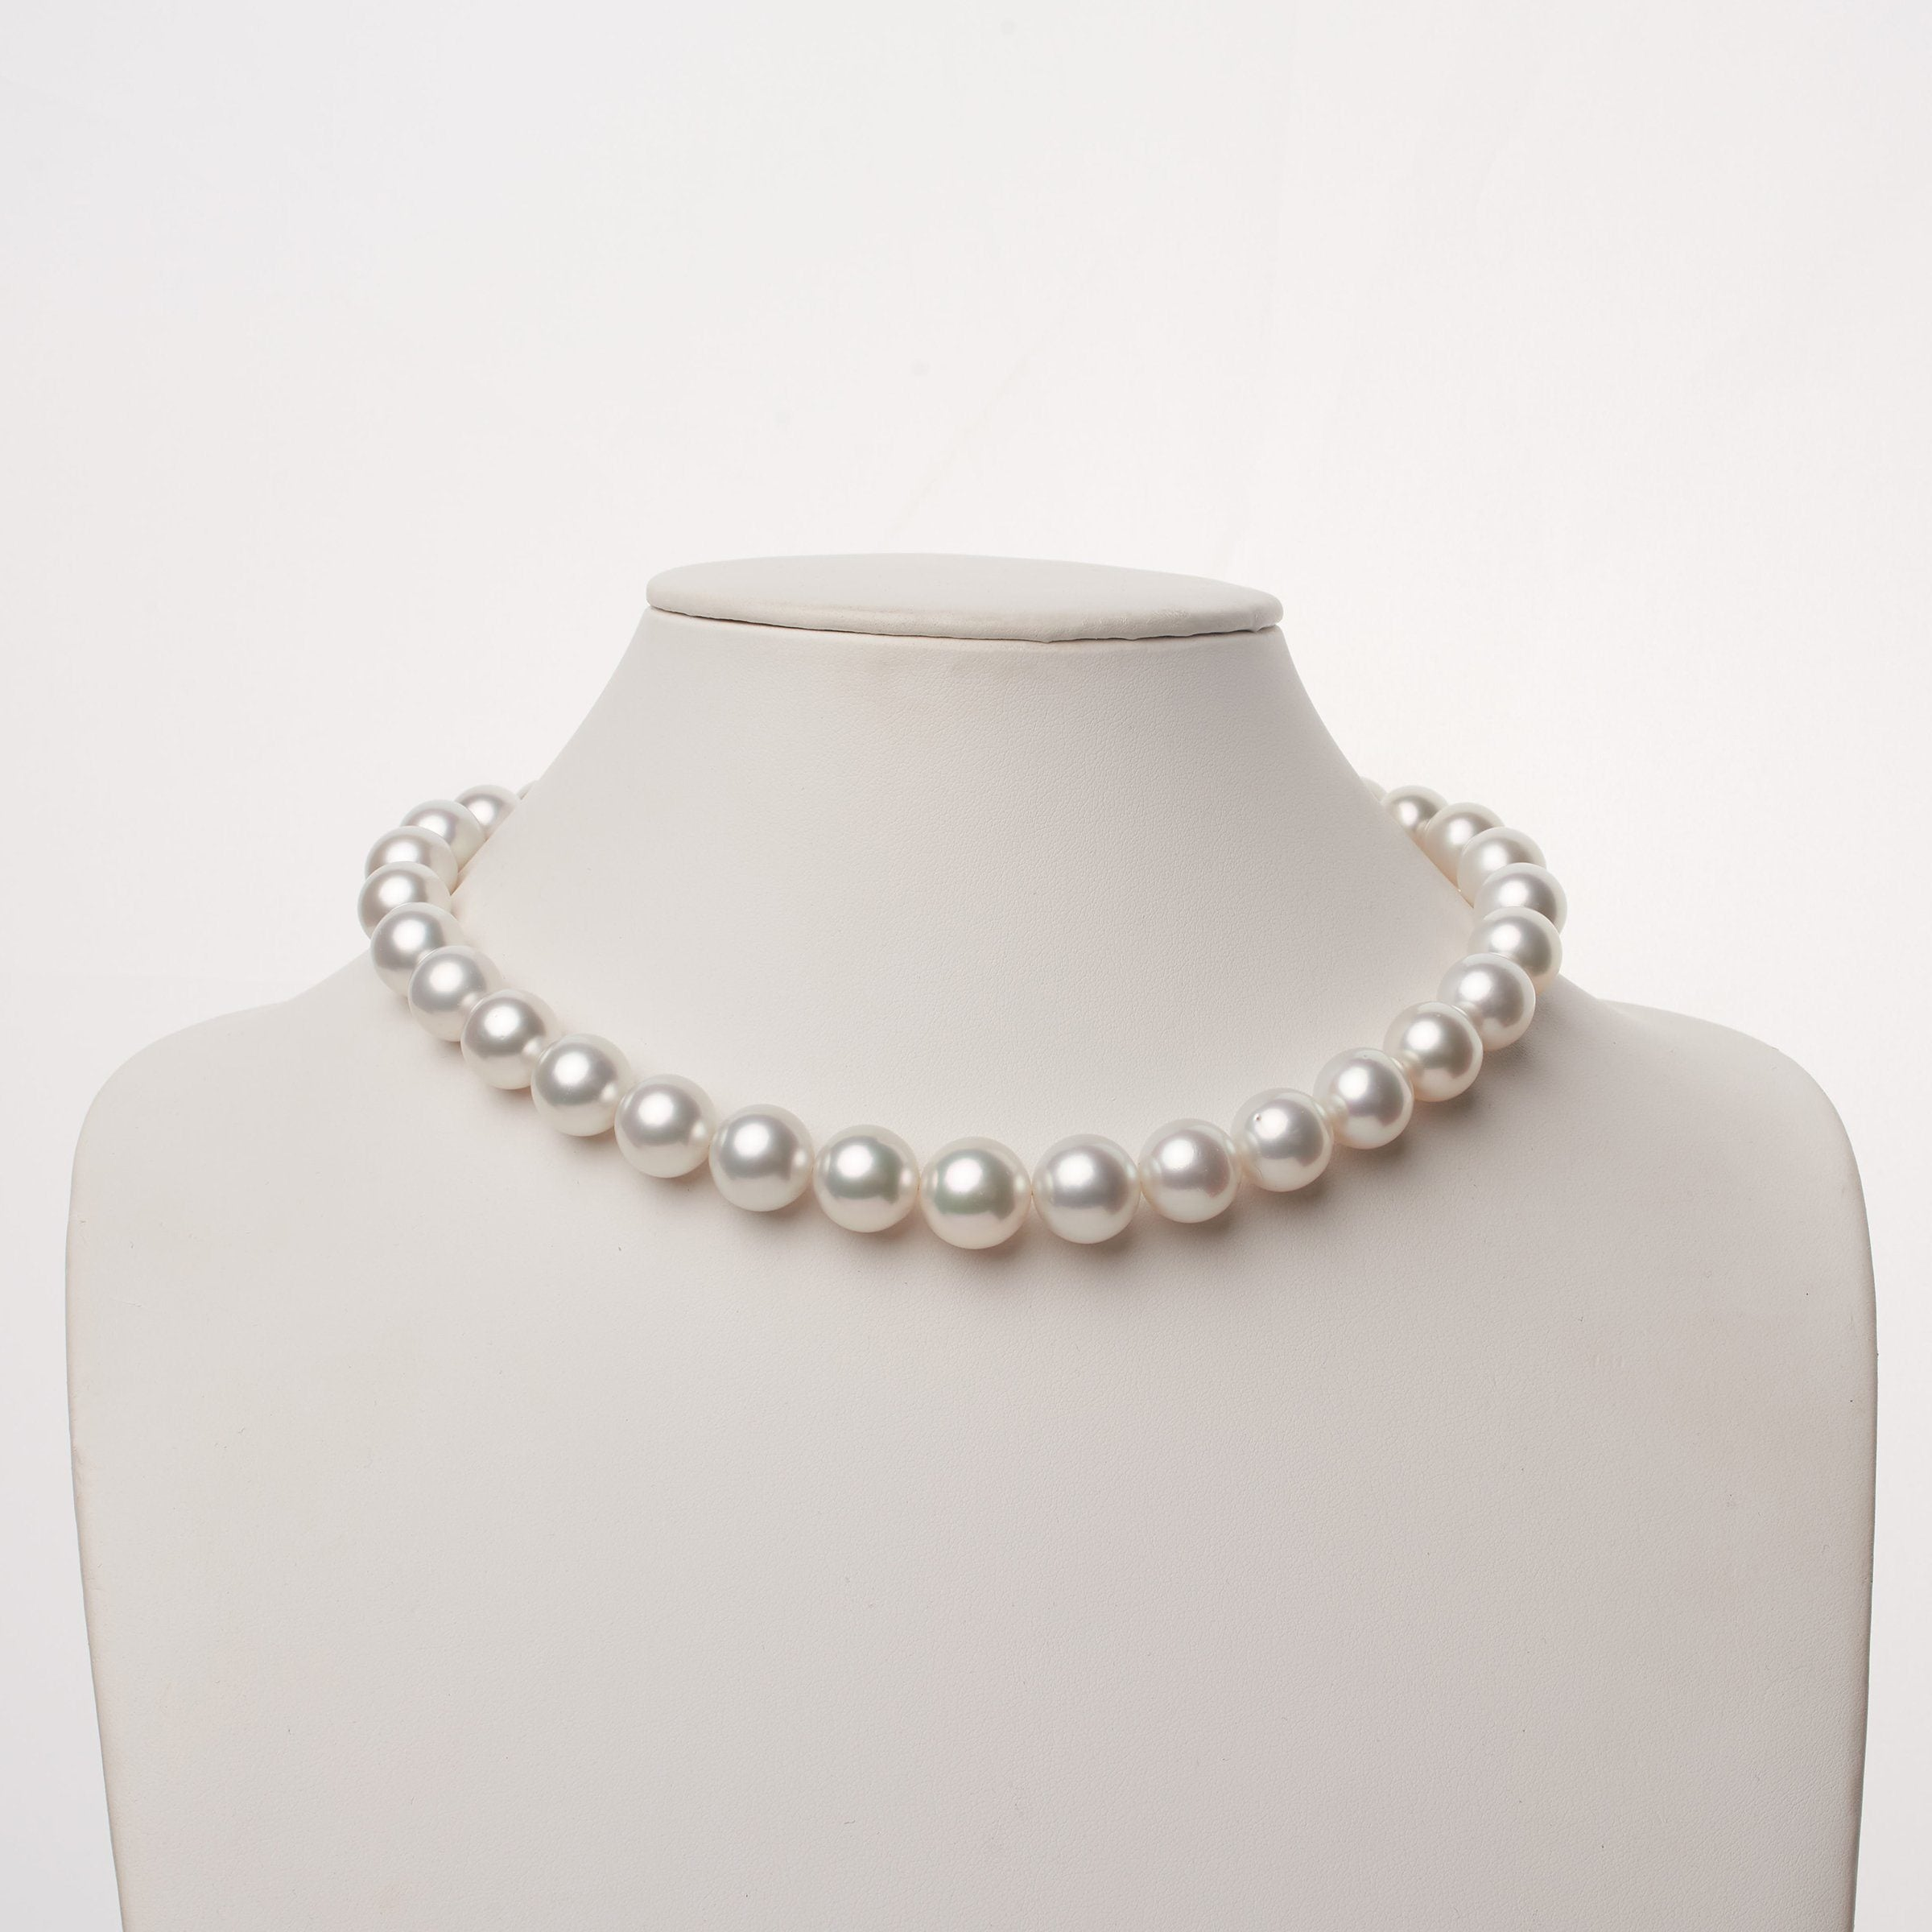 12.1-14.3 mm AAA White South Sea Round Pearl Necklace